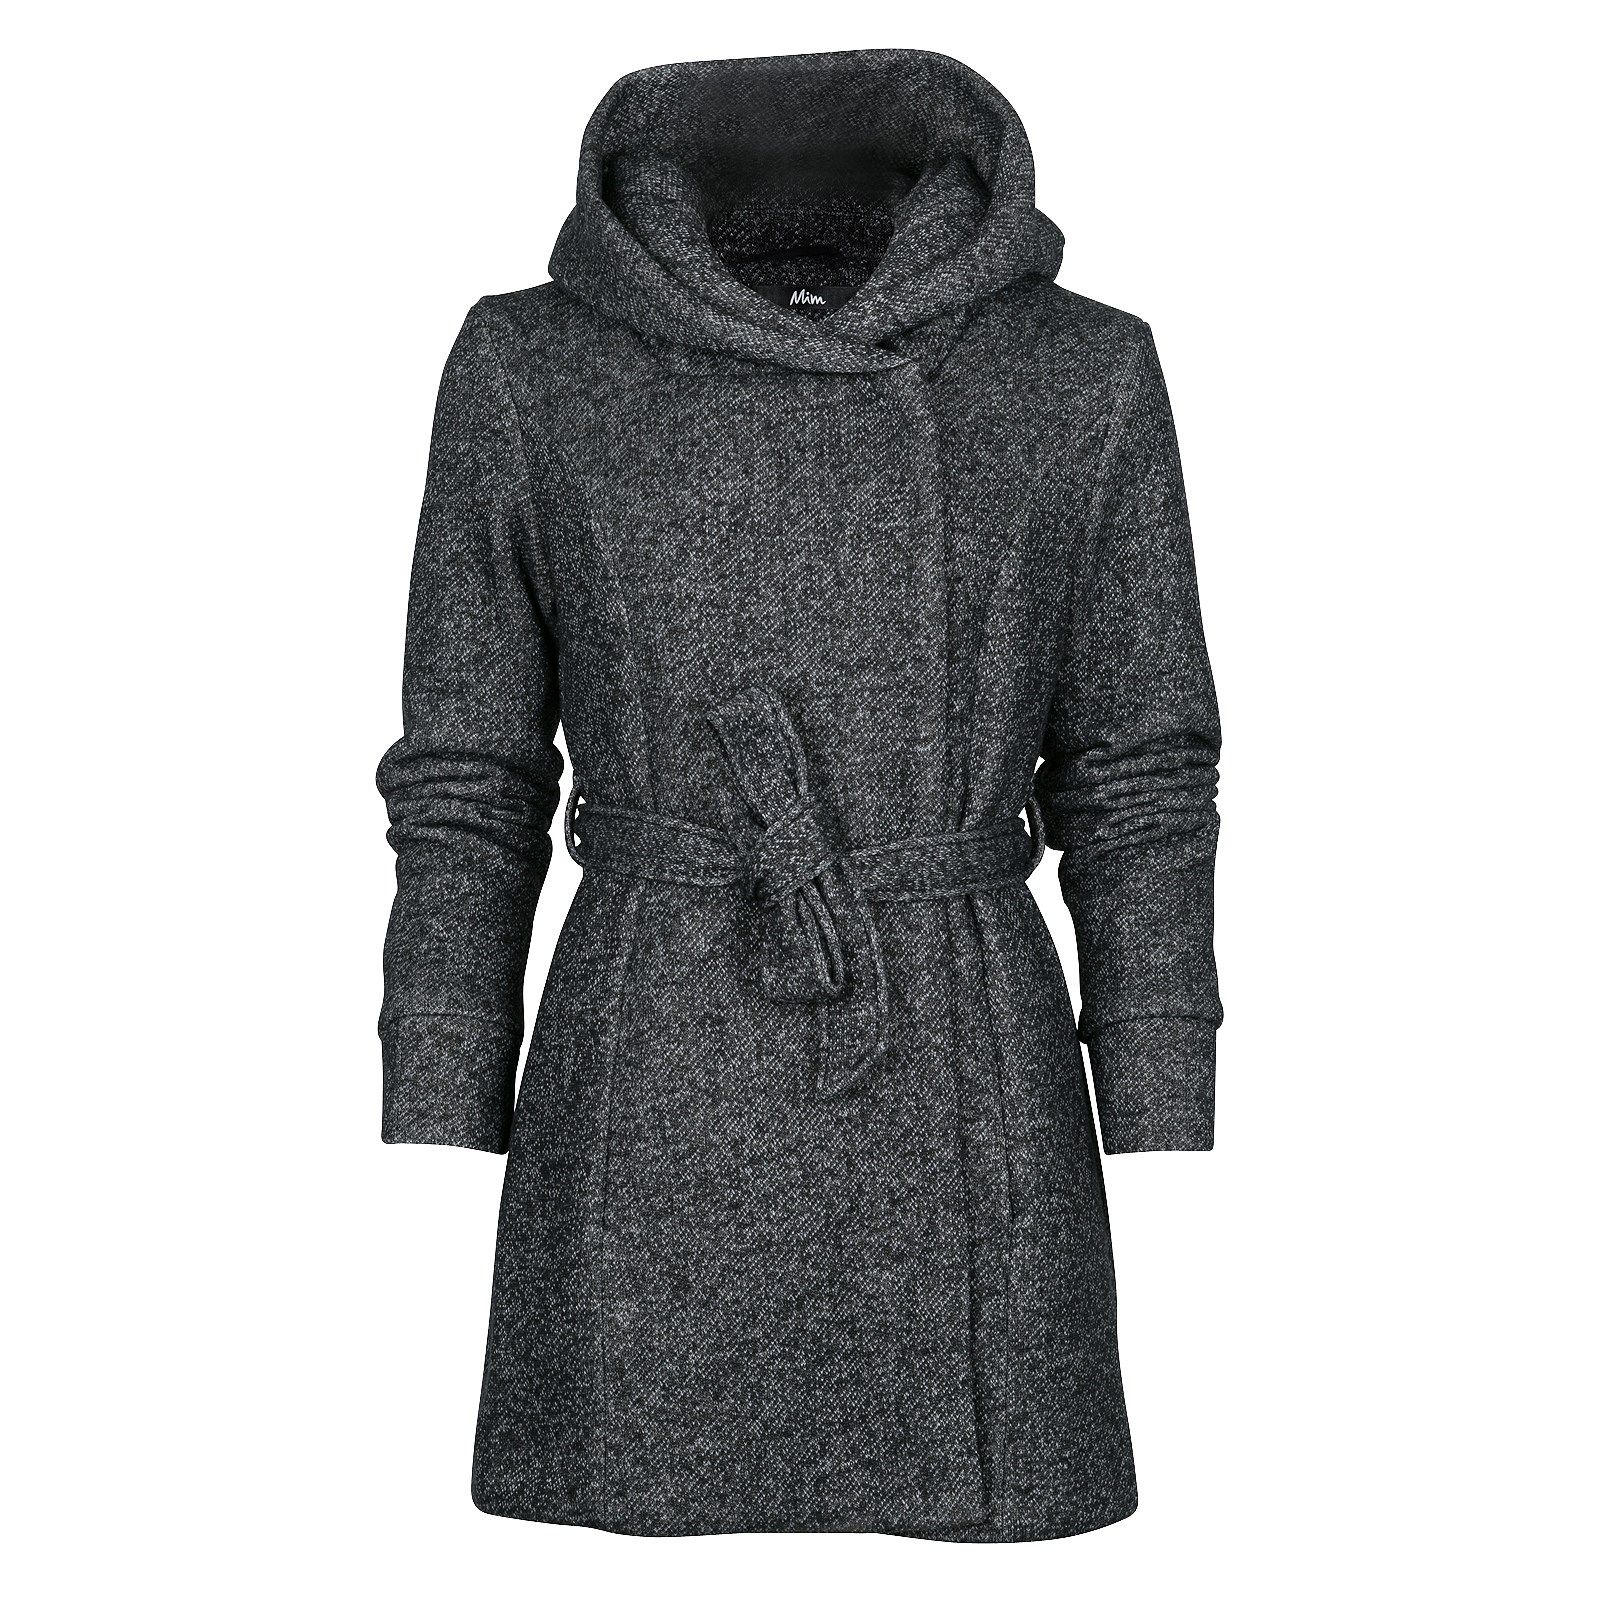 et à femme dress Manteau capuchemimMimRobeDream tsQdCBrhx